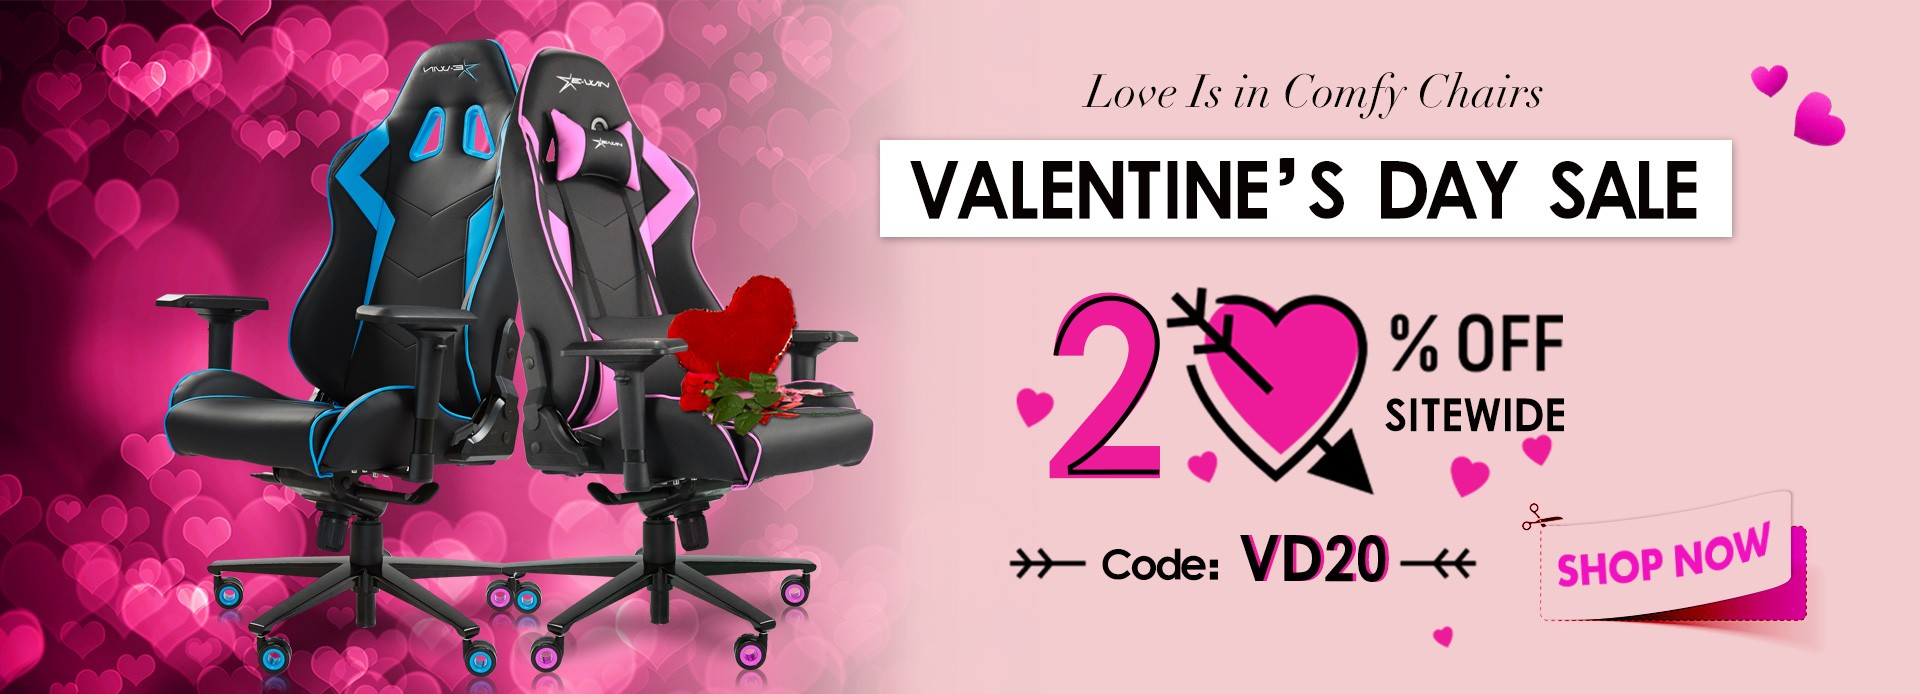 2020 Valentine's Day Sale